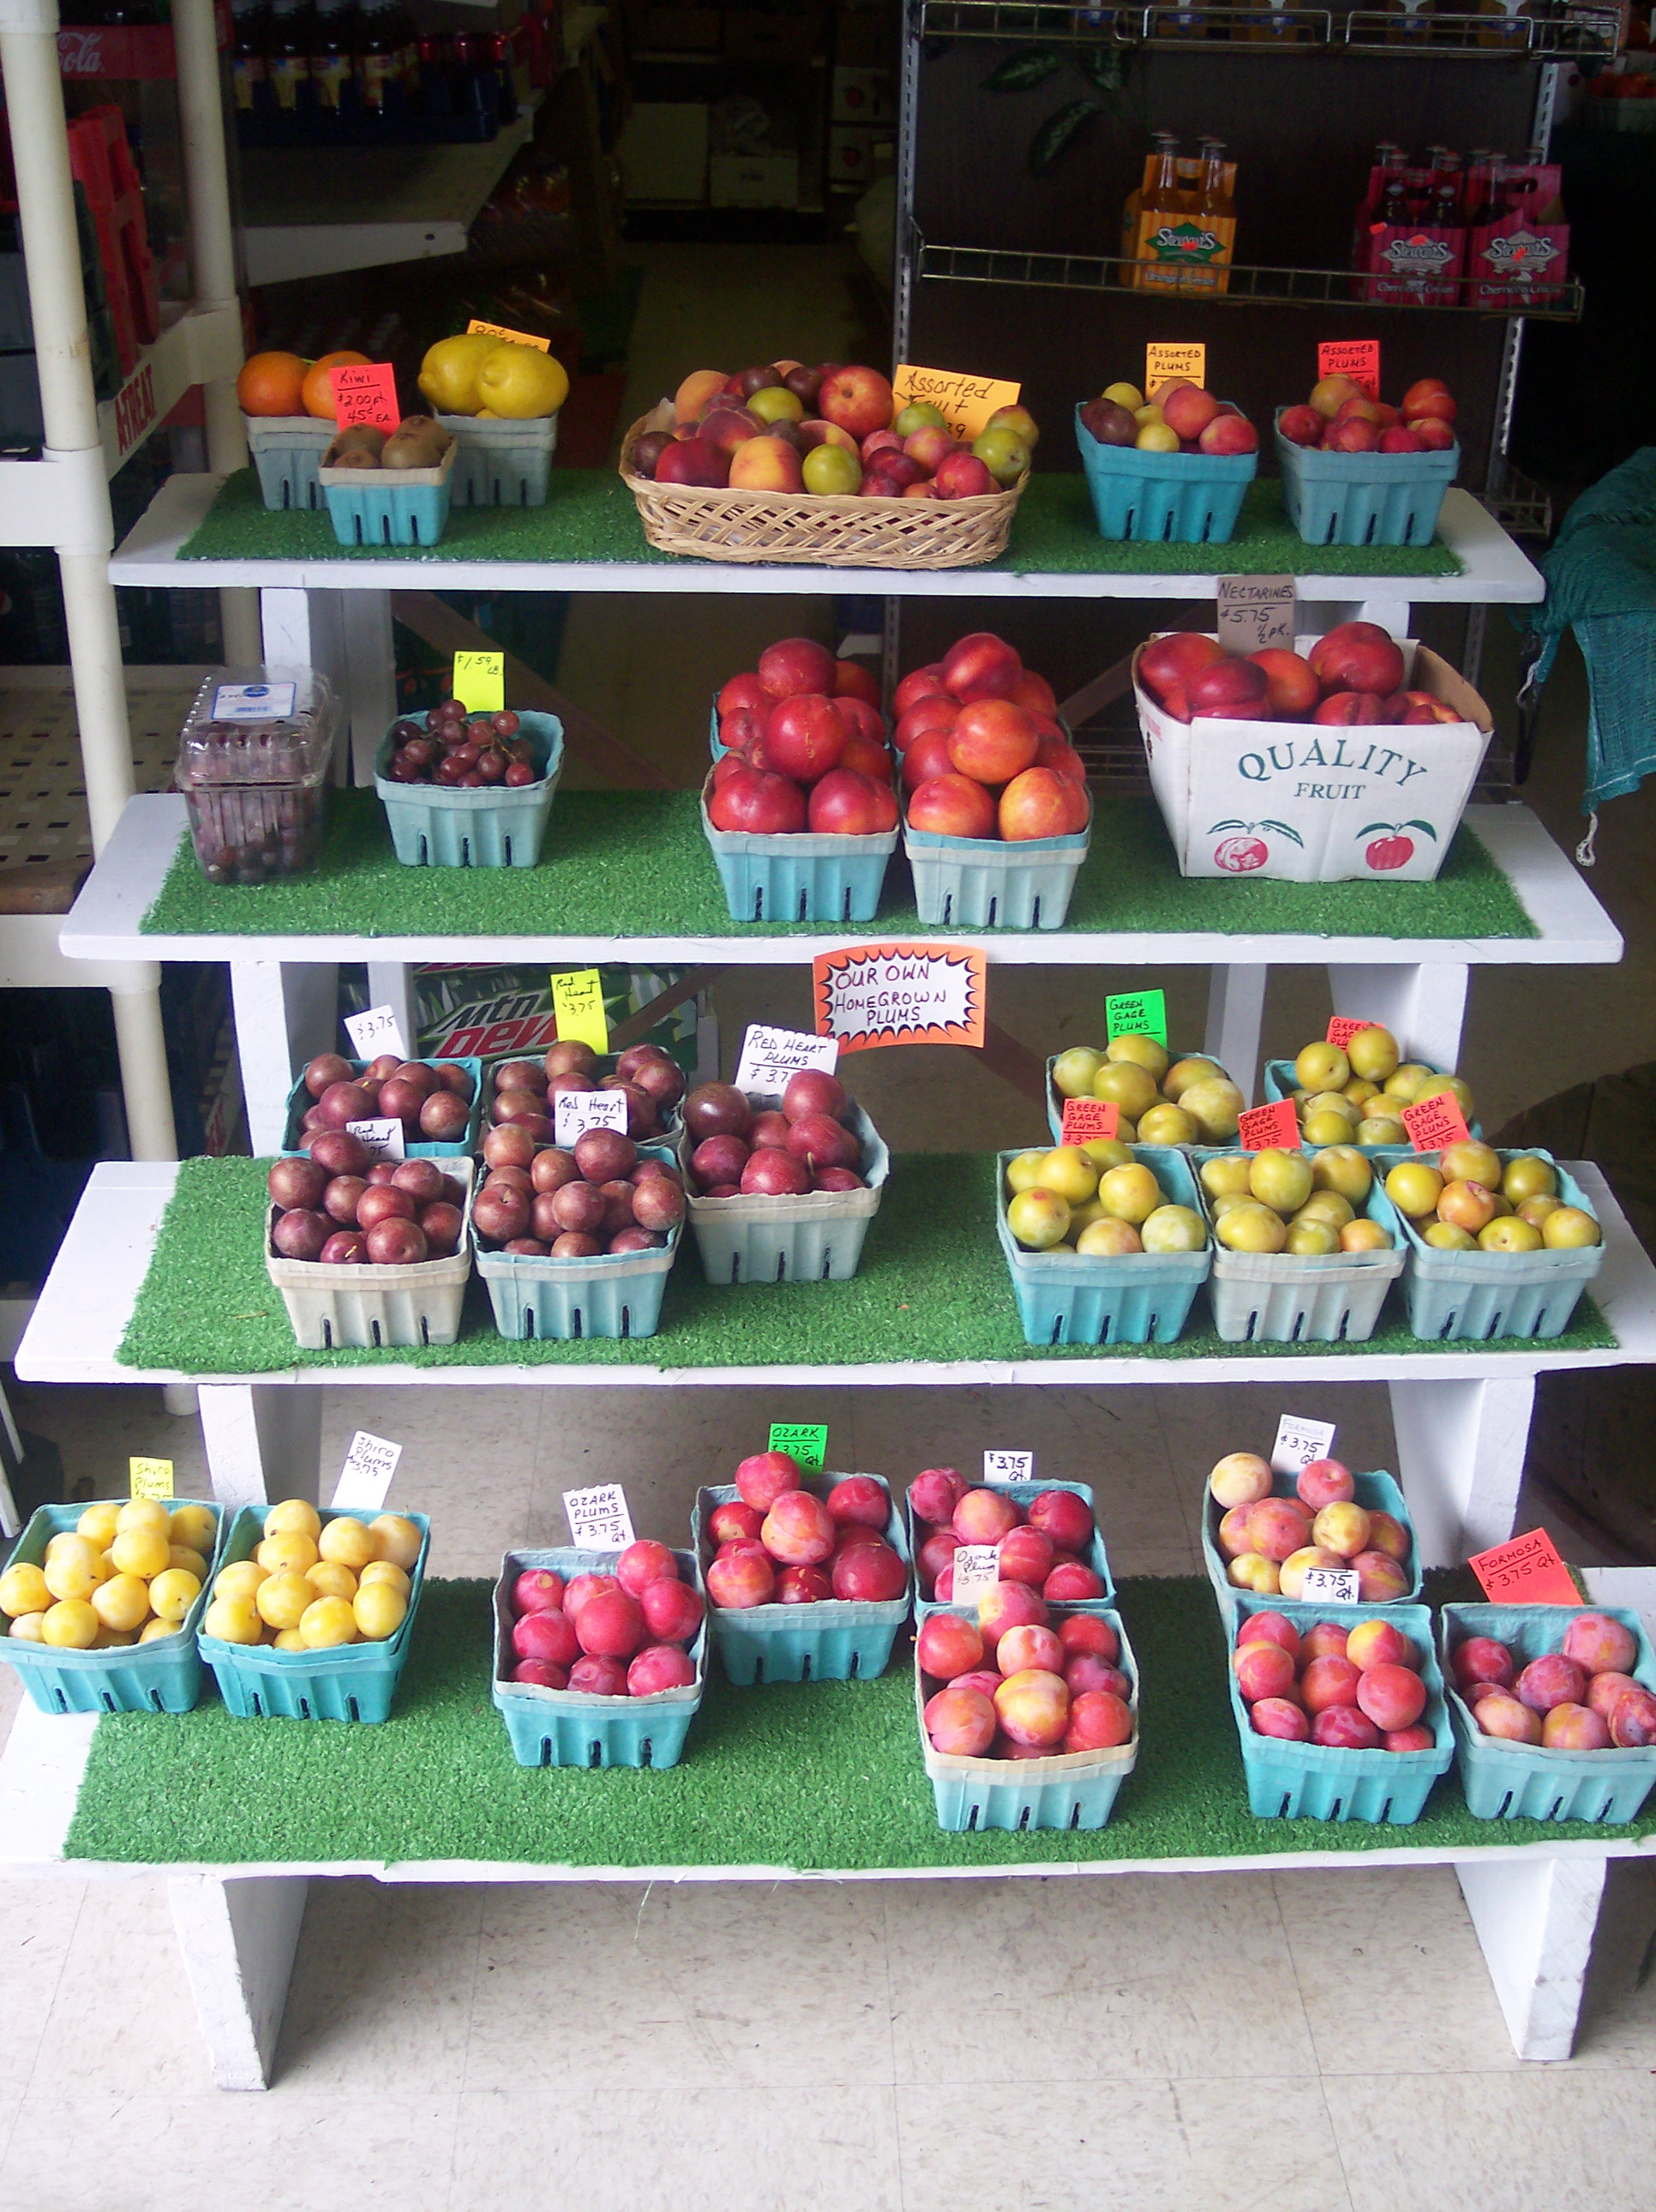 Fruit Produce